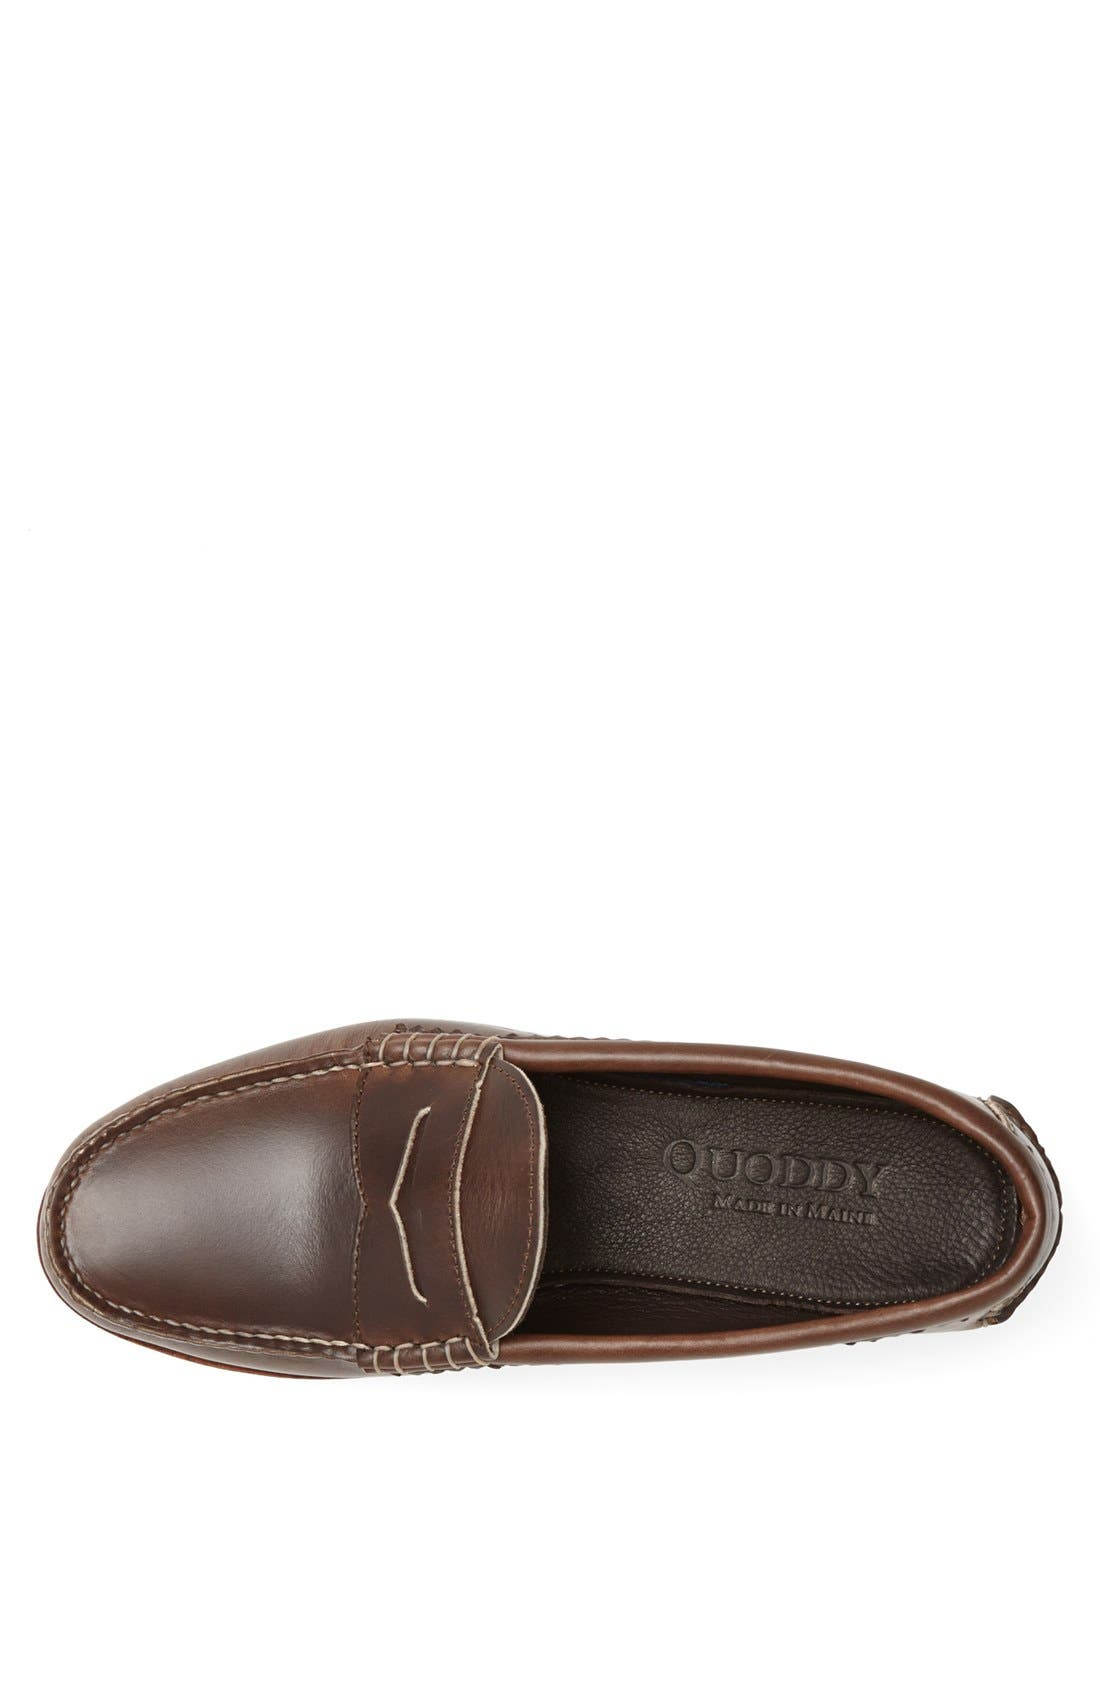 QUODDY,                             'True' Penny Loafer,                             Alternate thumbnail 4, color,                             204